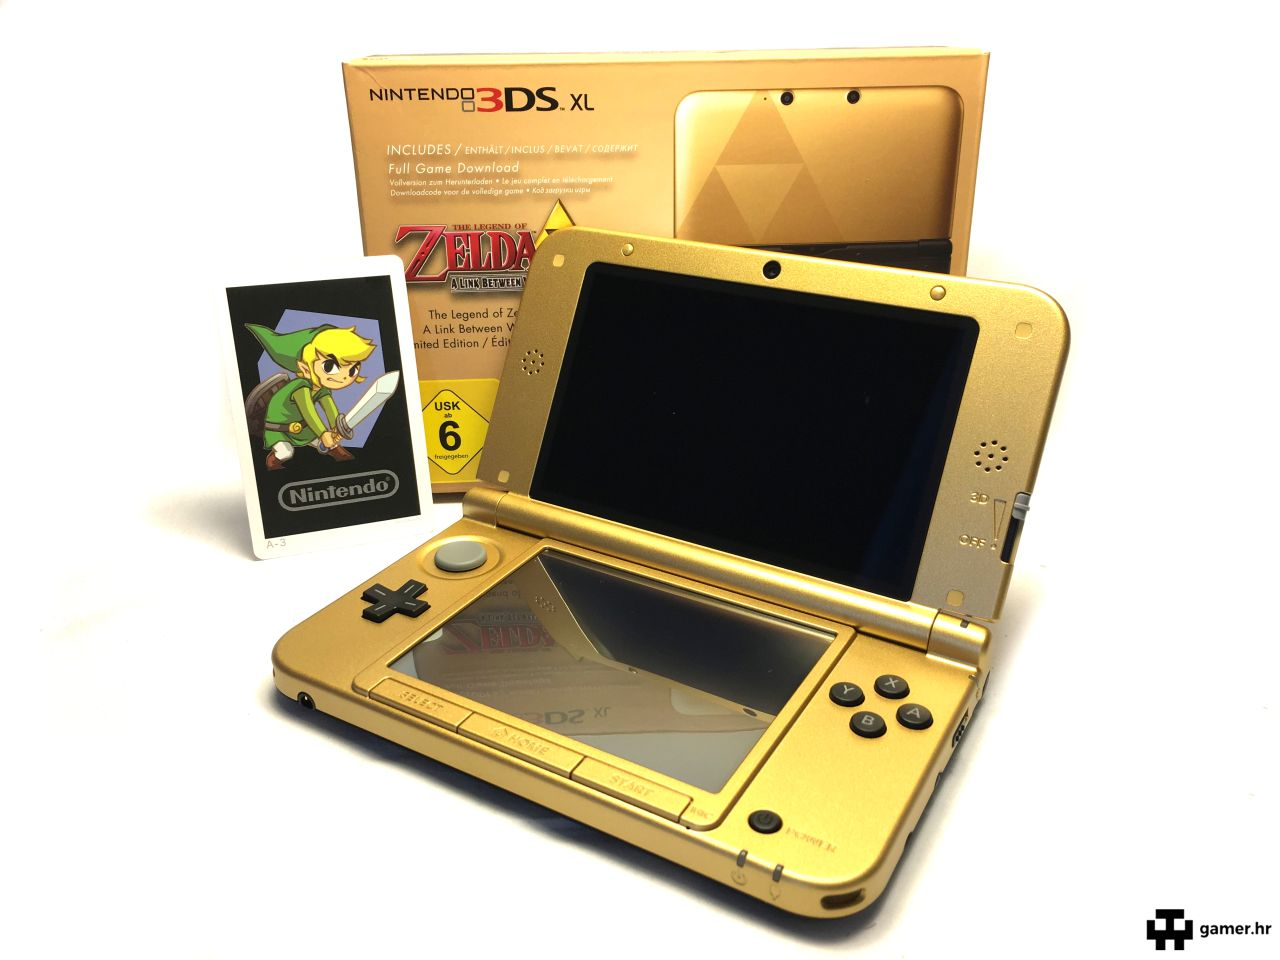 Recenzija: NINTENDO 3DS XL – The Legend of Zelda Limited Edition